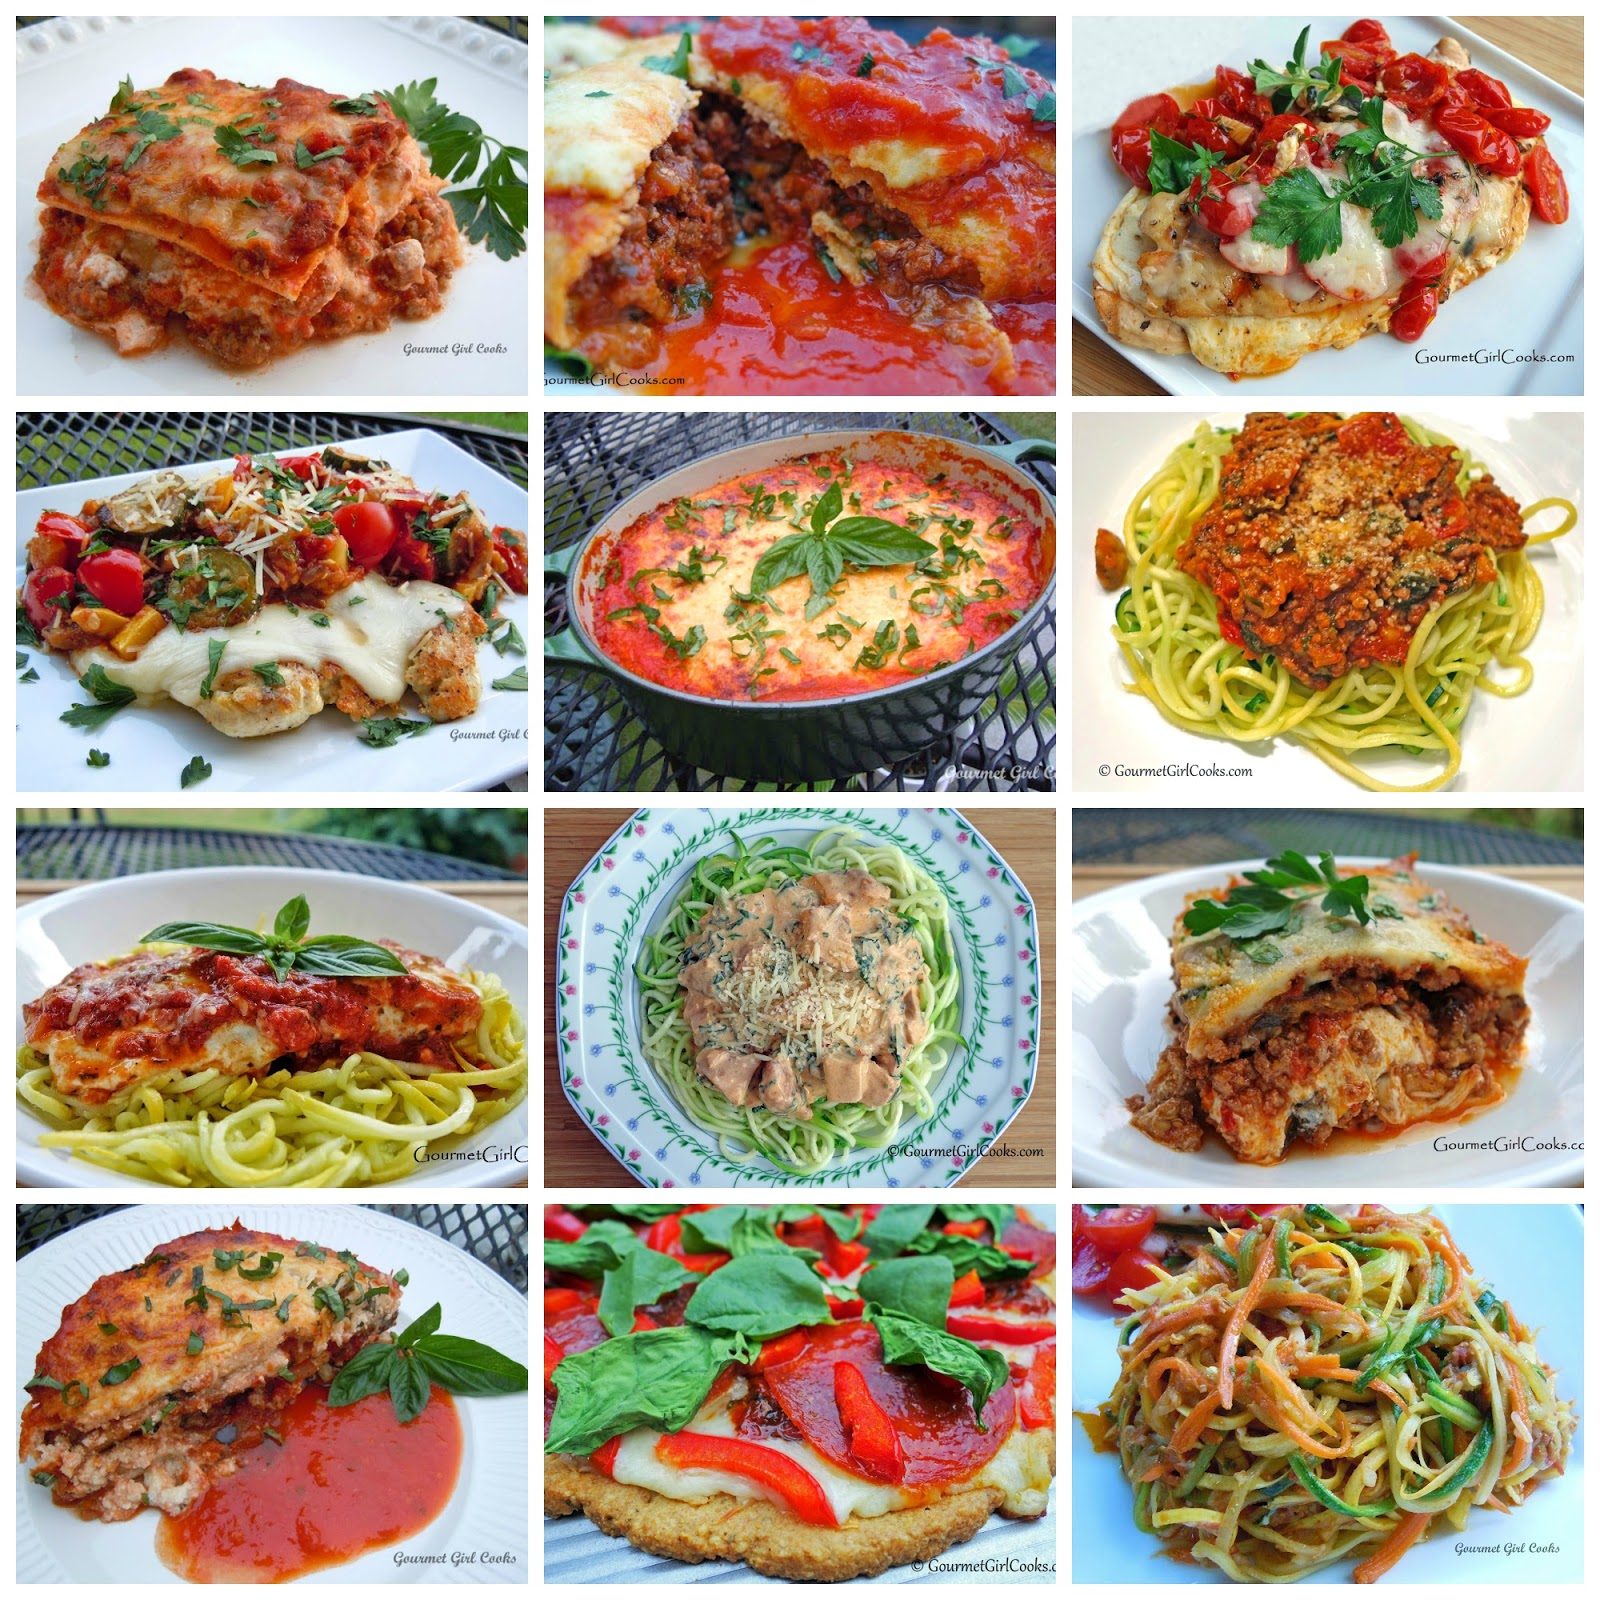 Gourmet girl cooks 16 low carb italian recipes a for Italian meals